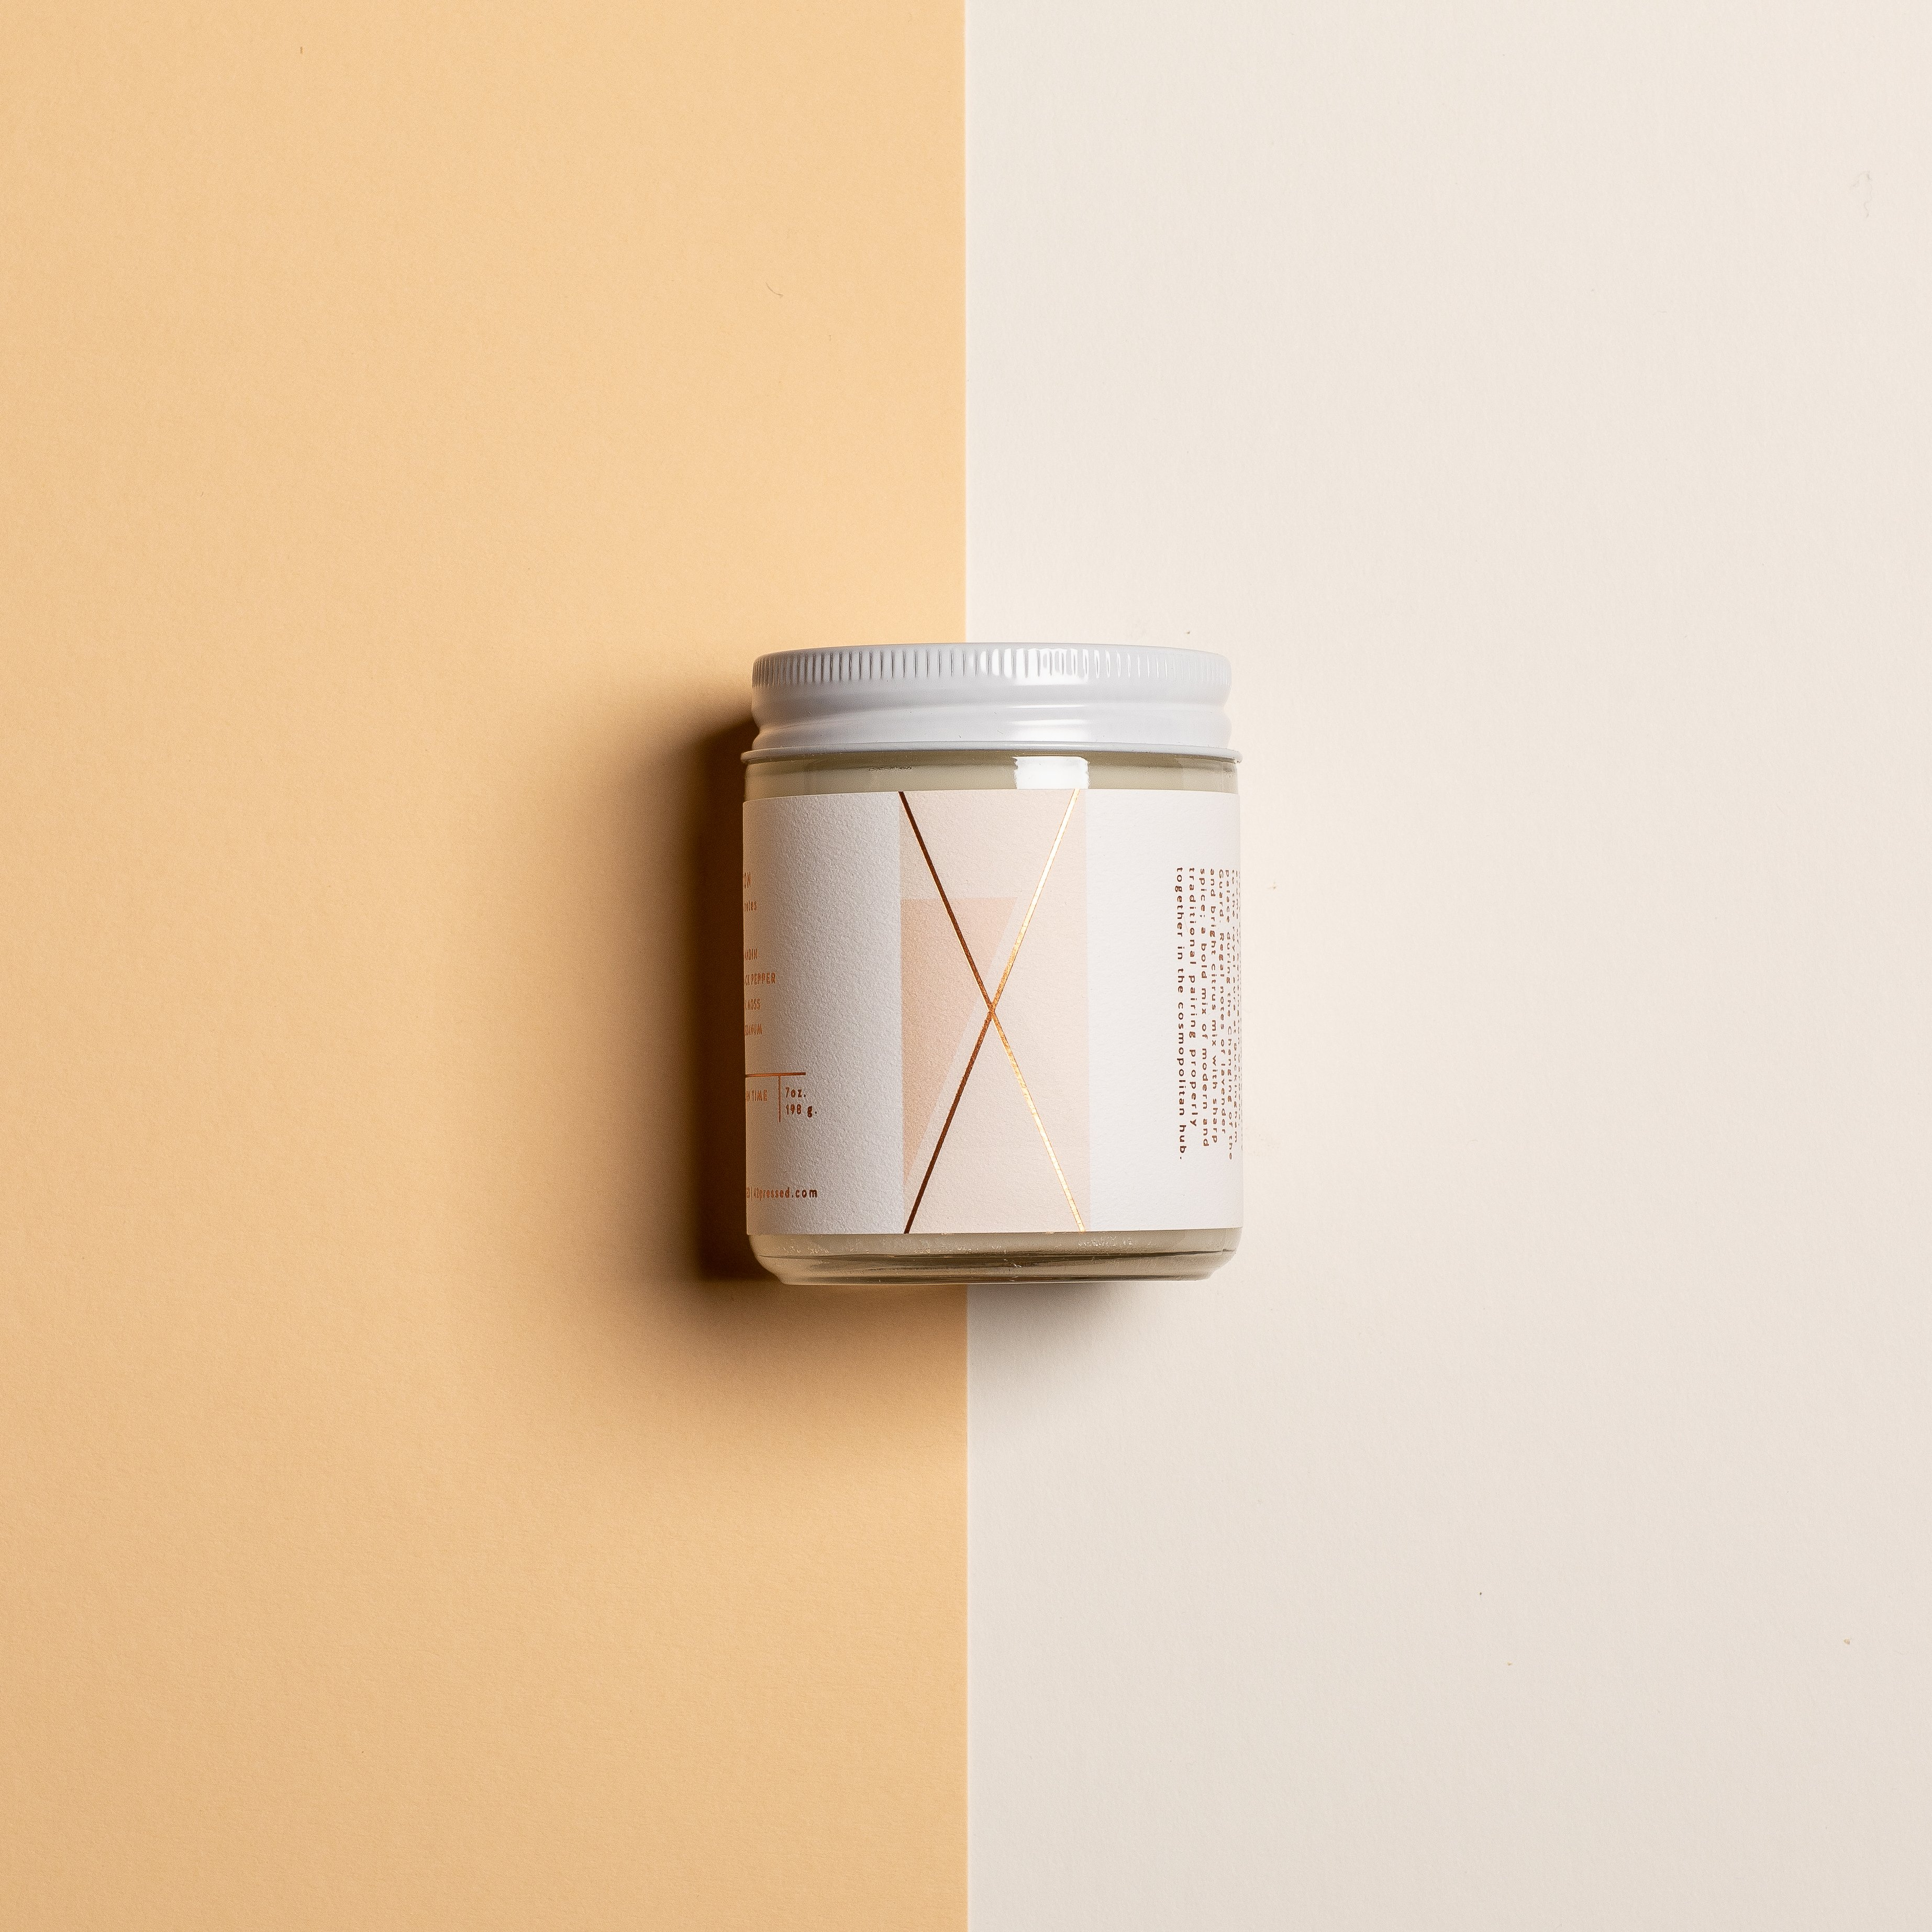 London Candle - First Edition